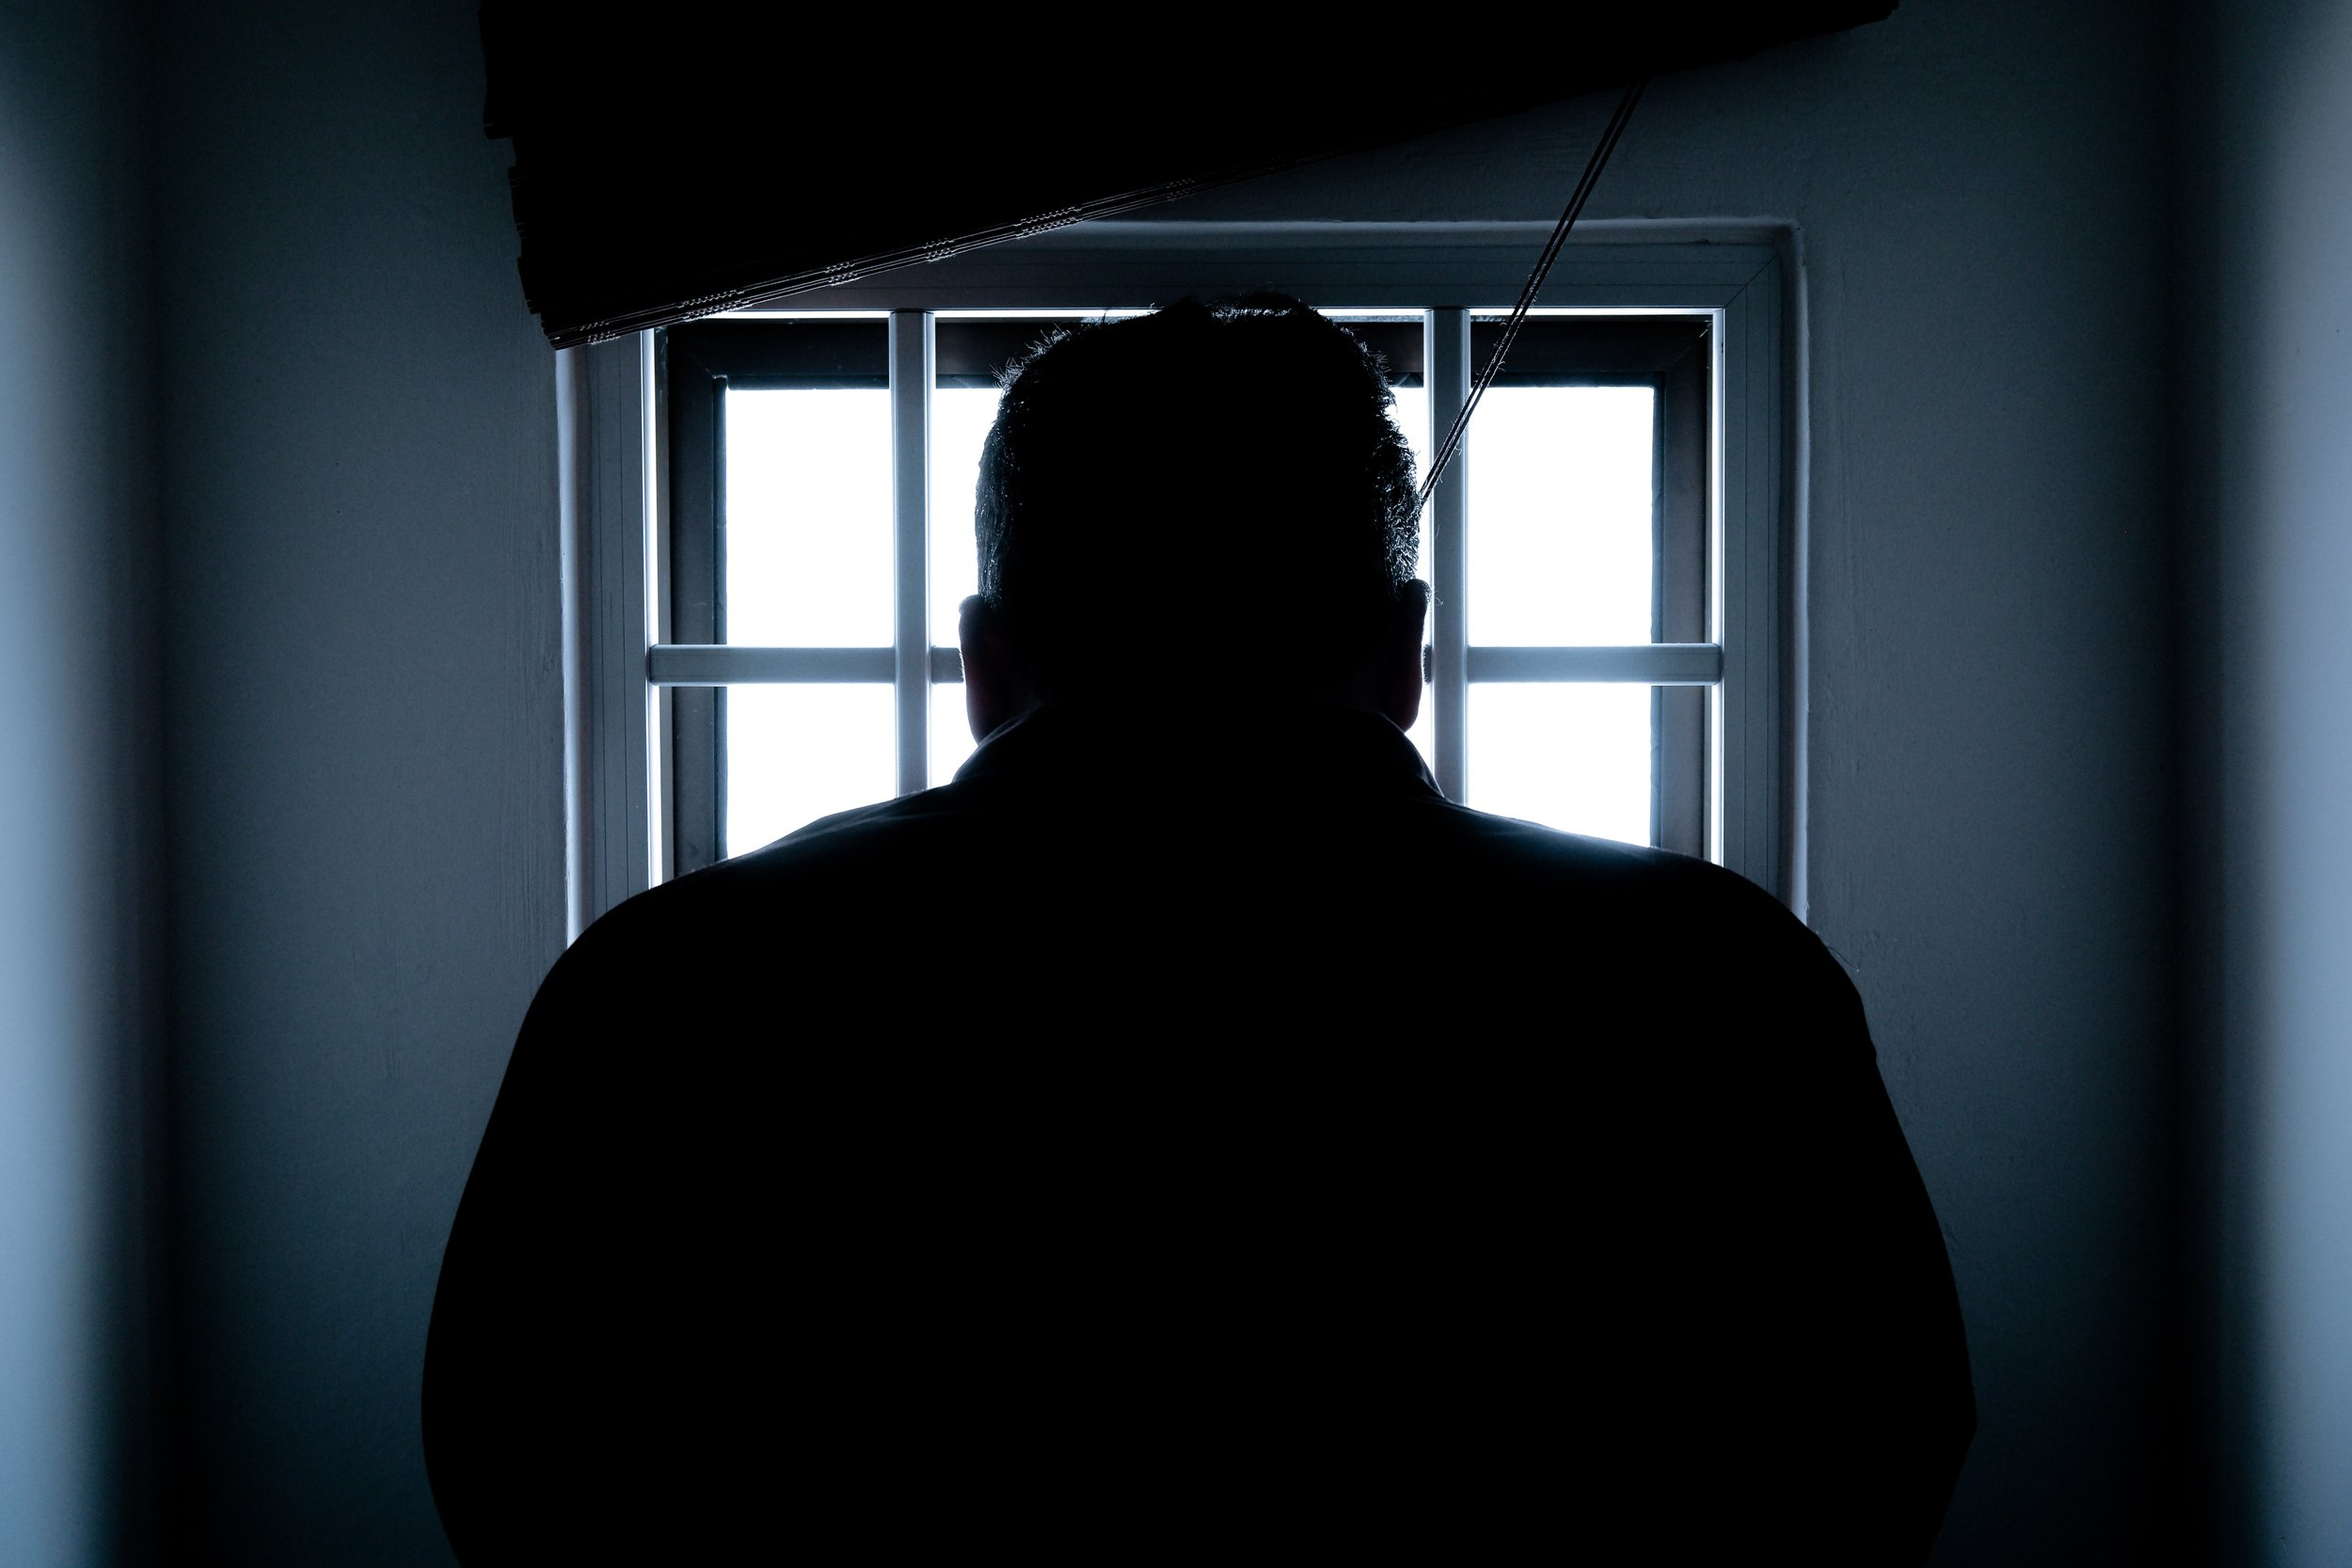 Prisoners experiencing prolonged solitary confinement have a higher risk of developing psychiatric consequences, including depression, anxiety and self-harm.   Donald Tong/Pexels  (no copyright restrictions)